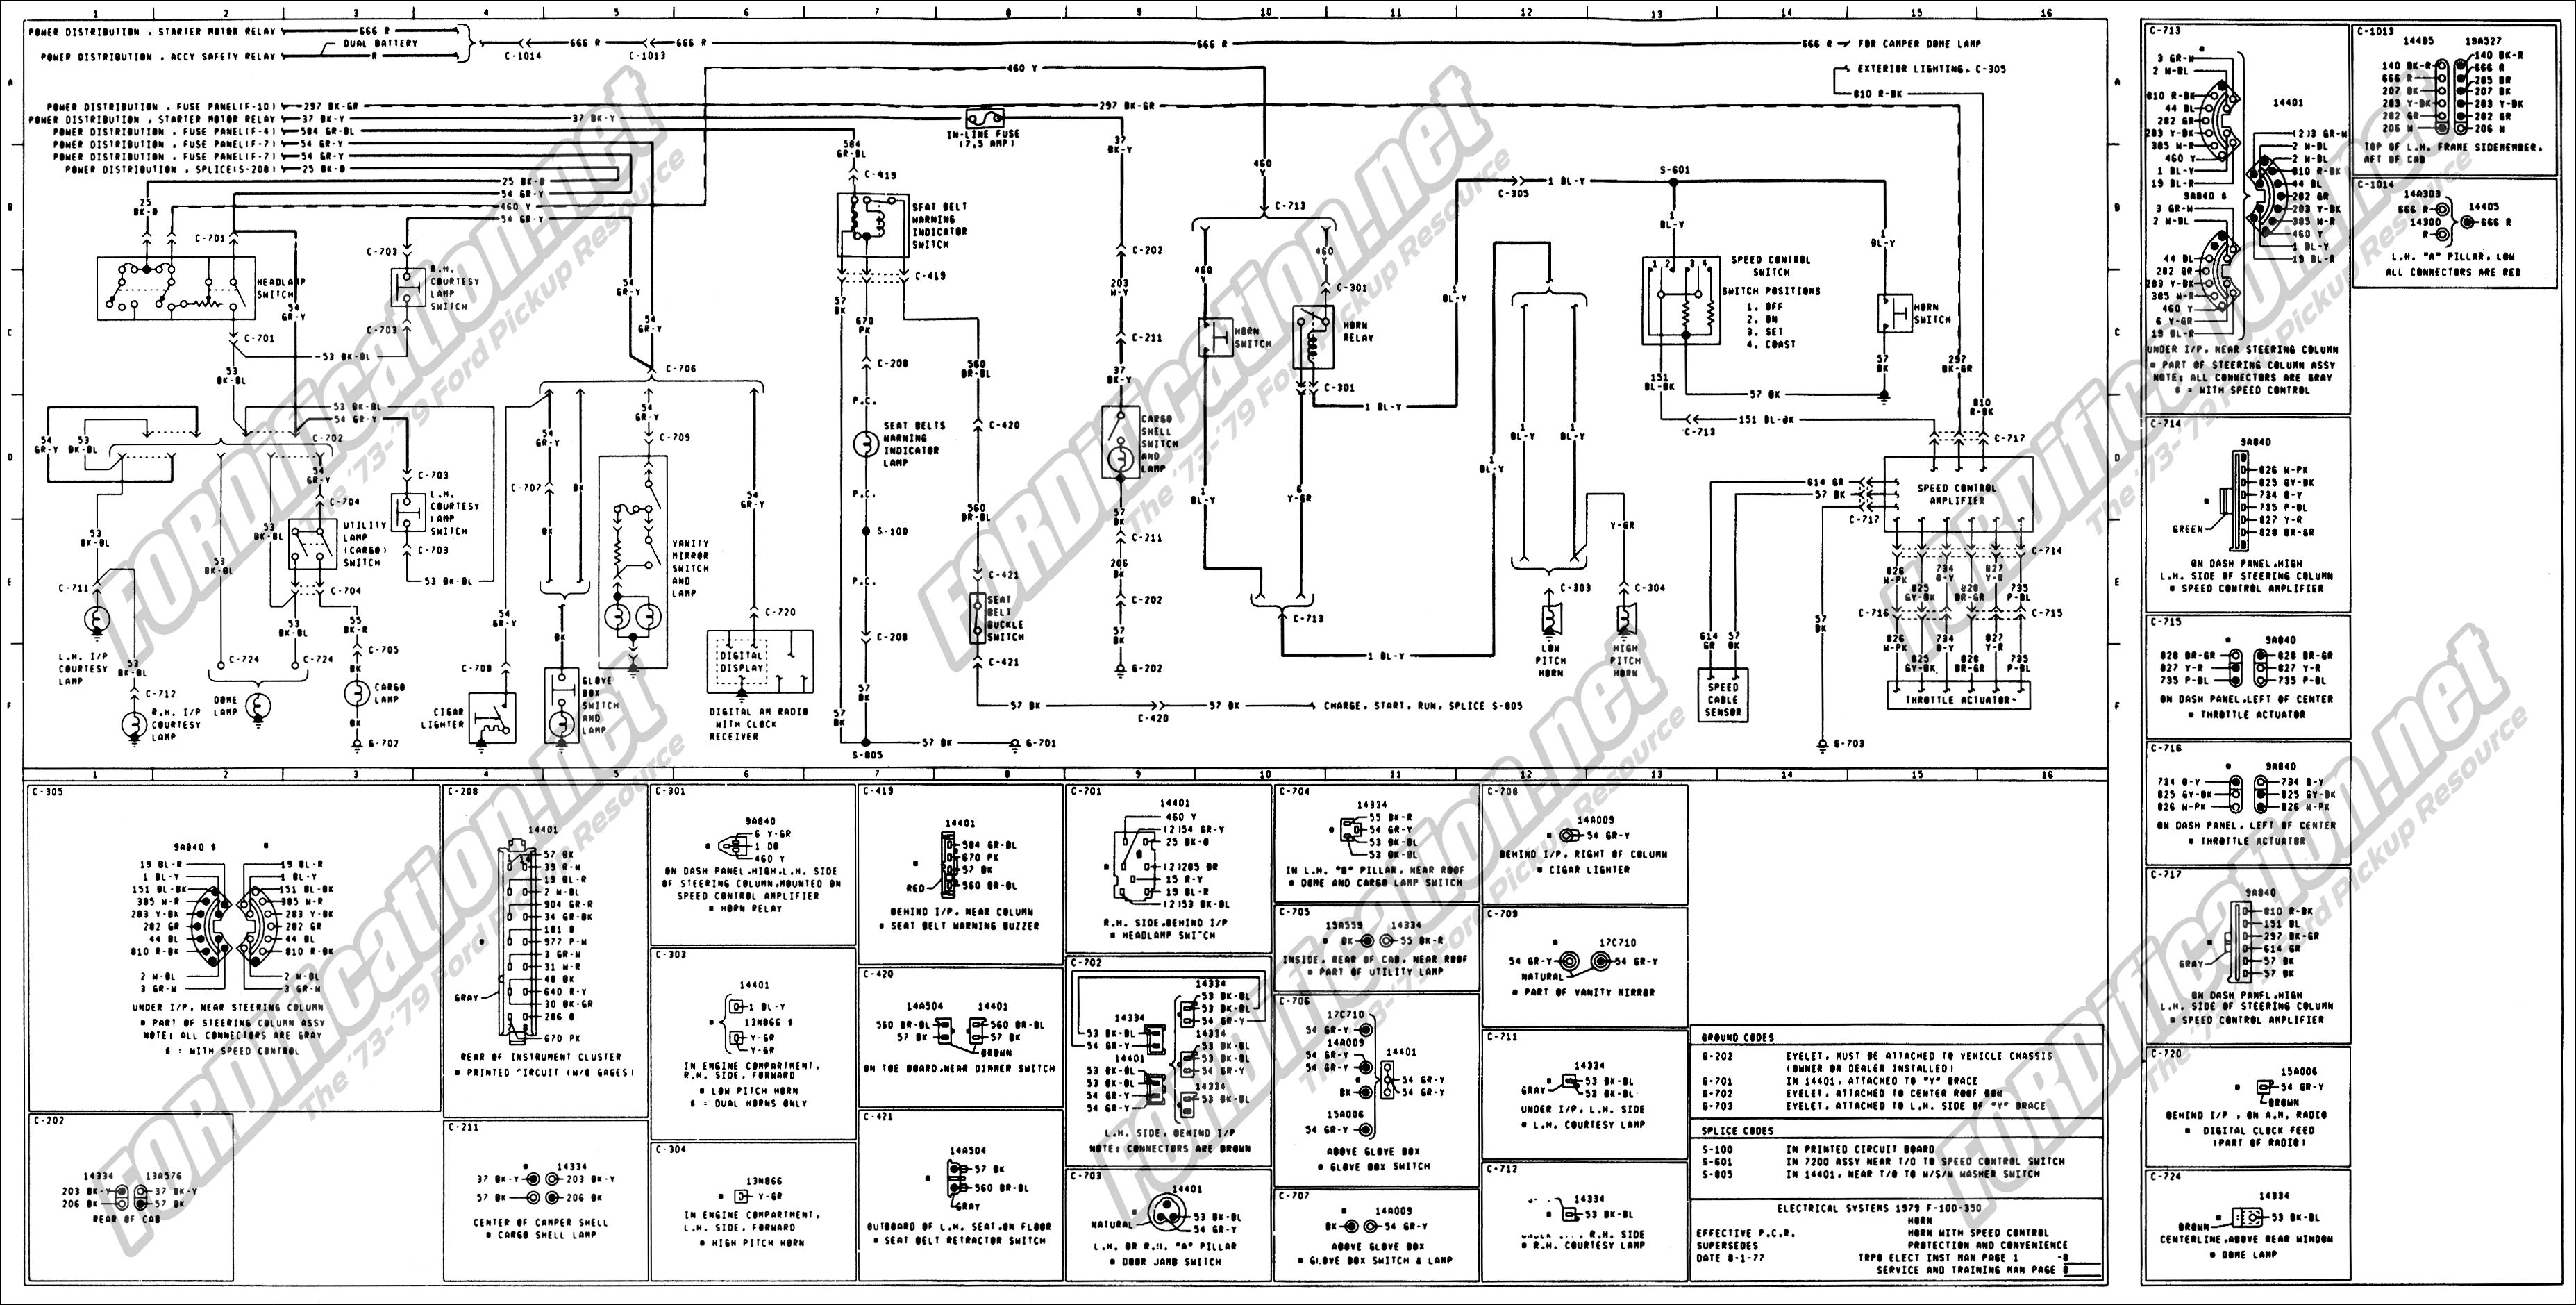 wiring_79master_8of9 1973 1979 ford truck wiring diagrams & schematics fordification net 1979 ford bronco fuse box diagram at readyjetset.co